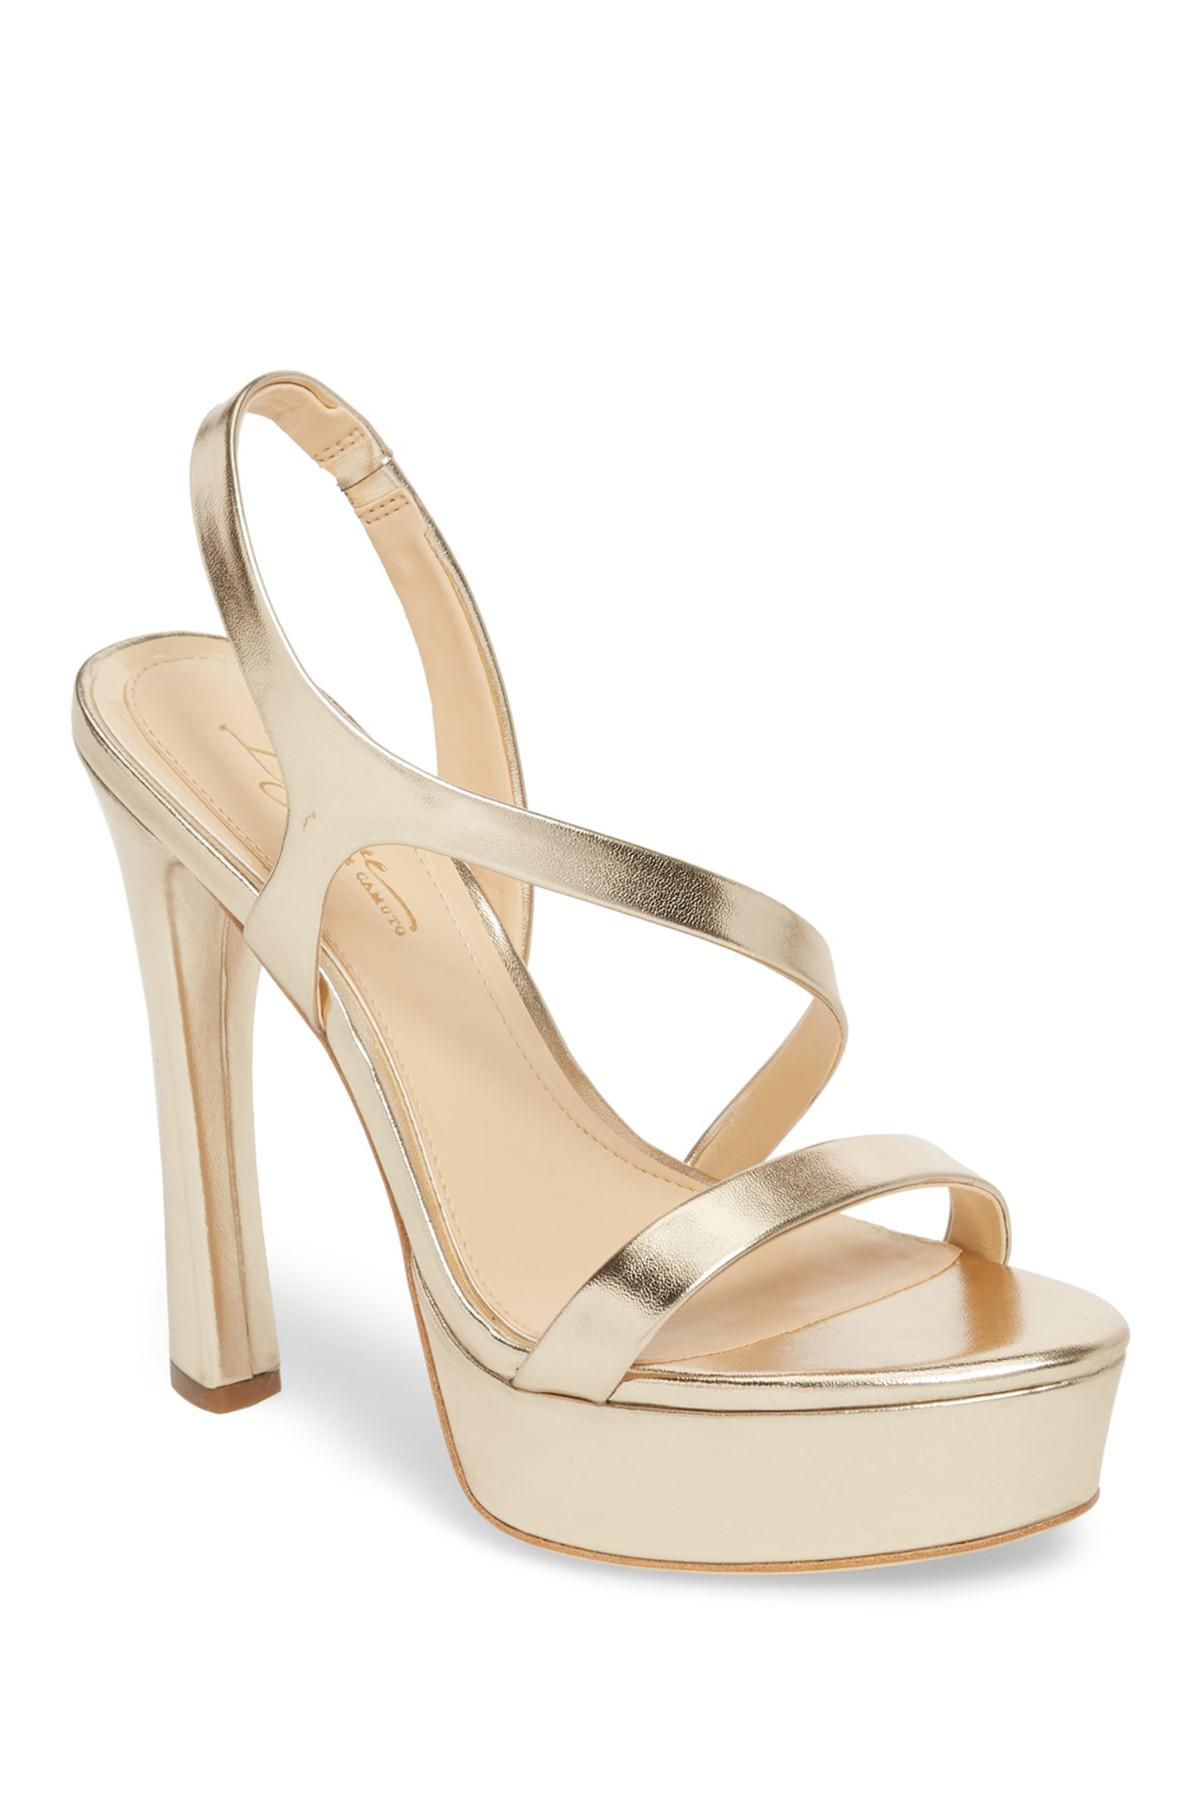 5145297237d Lyst - Imagine Vince Camuto Piera Platform Sandal in Metallic